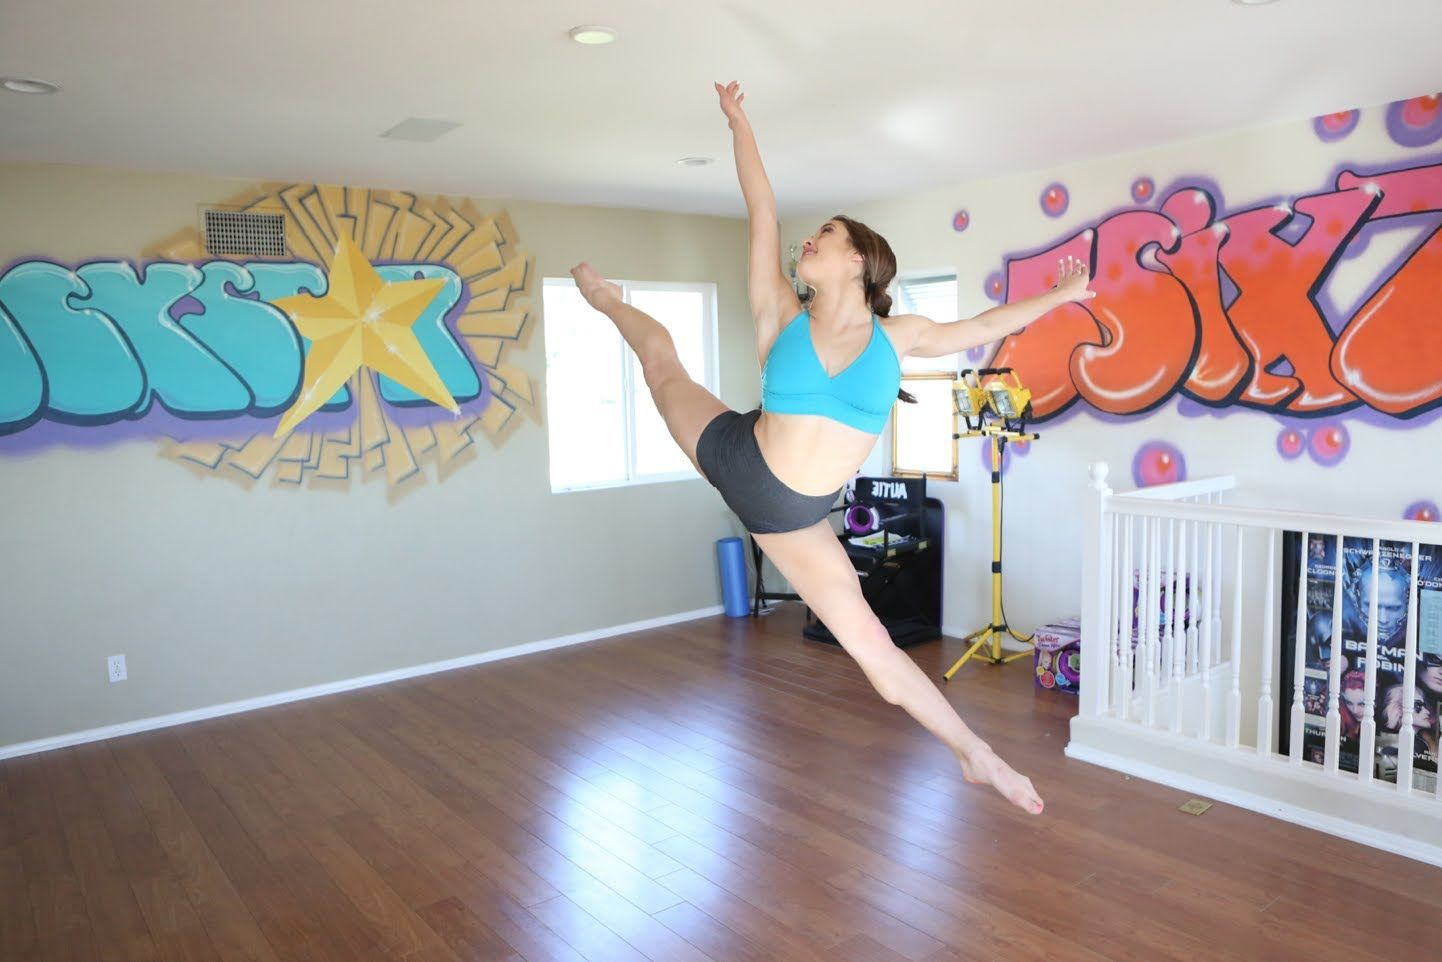 How To Do A Fouette Arabesque Jump Fouette Arabesque Jumps